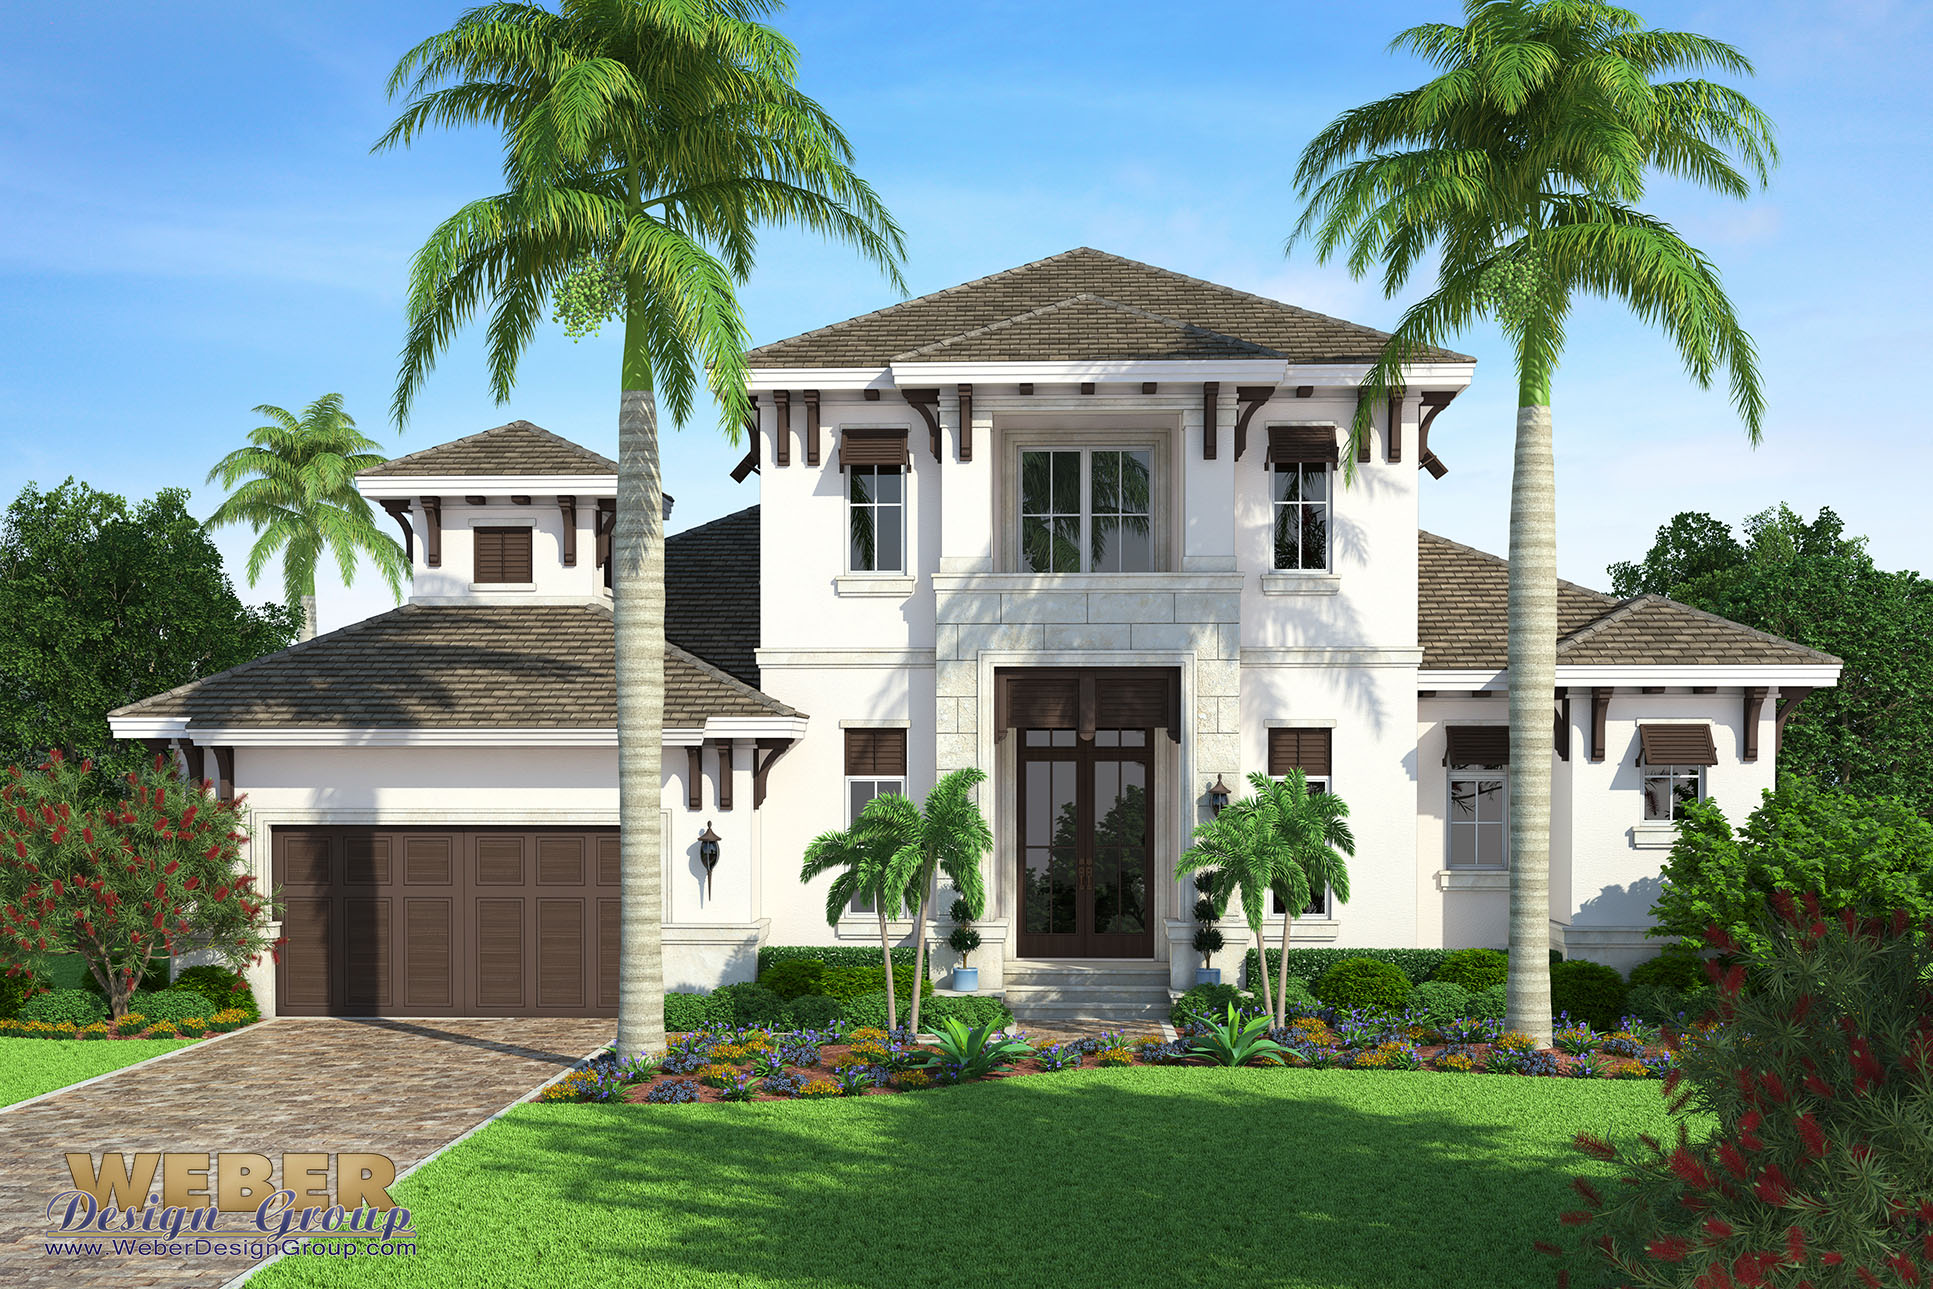 Beach house plan transitional west indies beach home for Two story beach house plans